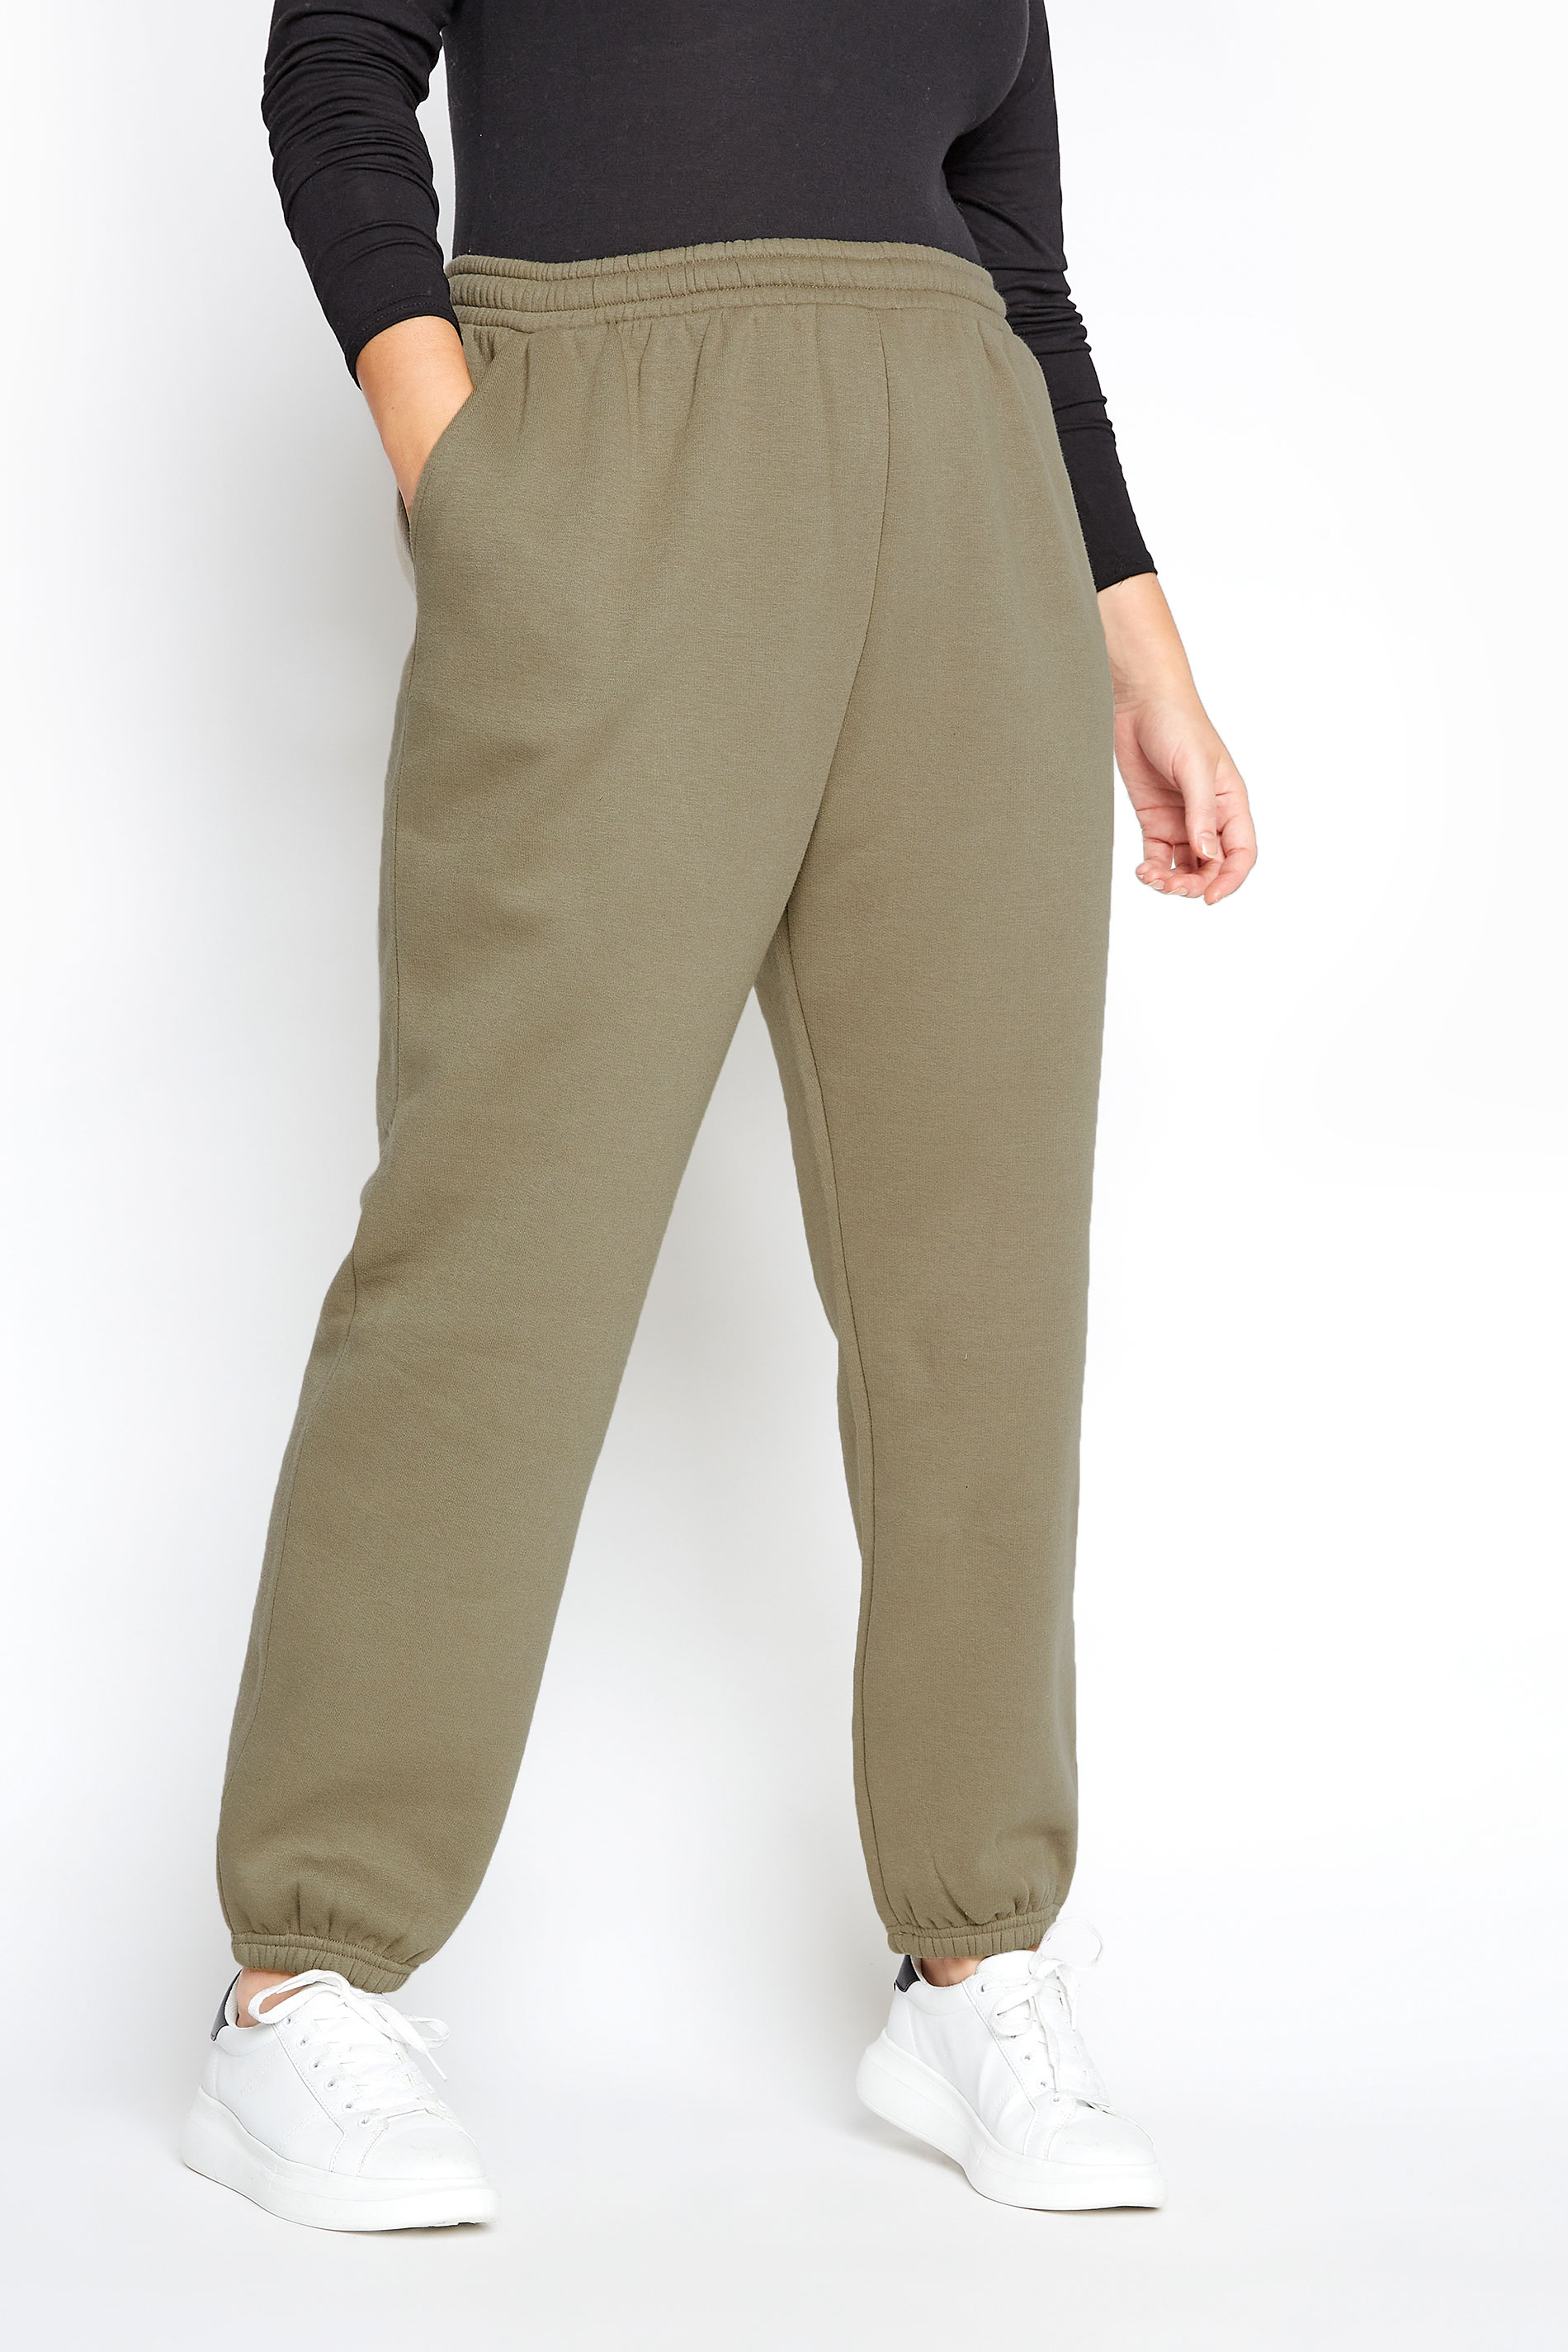 LIMITED COLLECTION Khaki Cotton Jersey Joggers